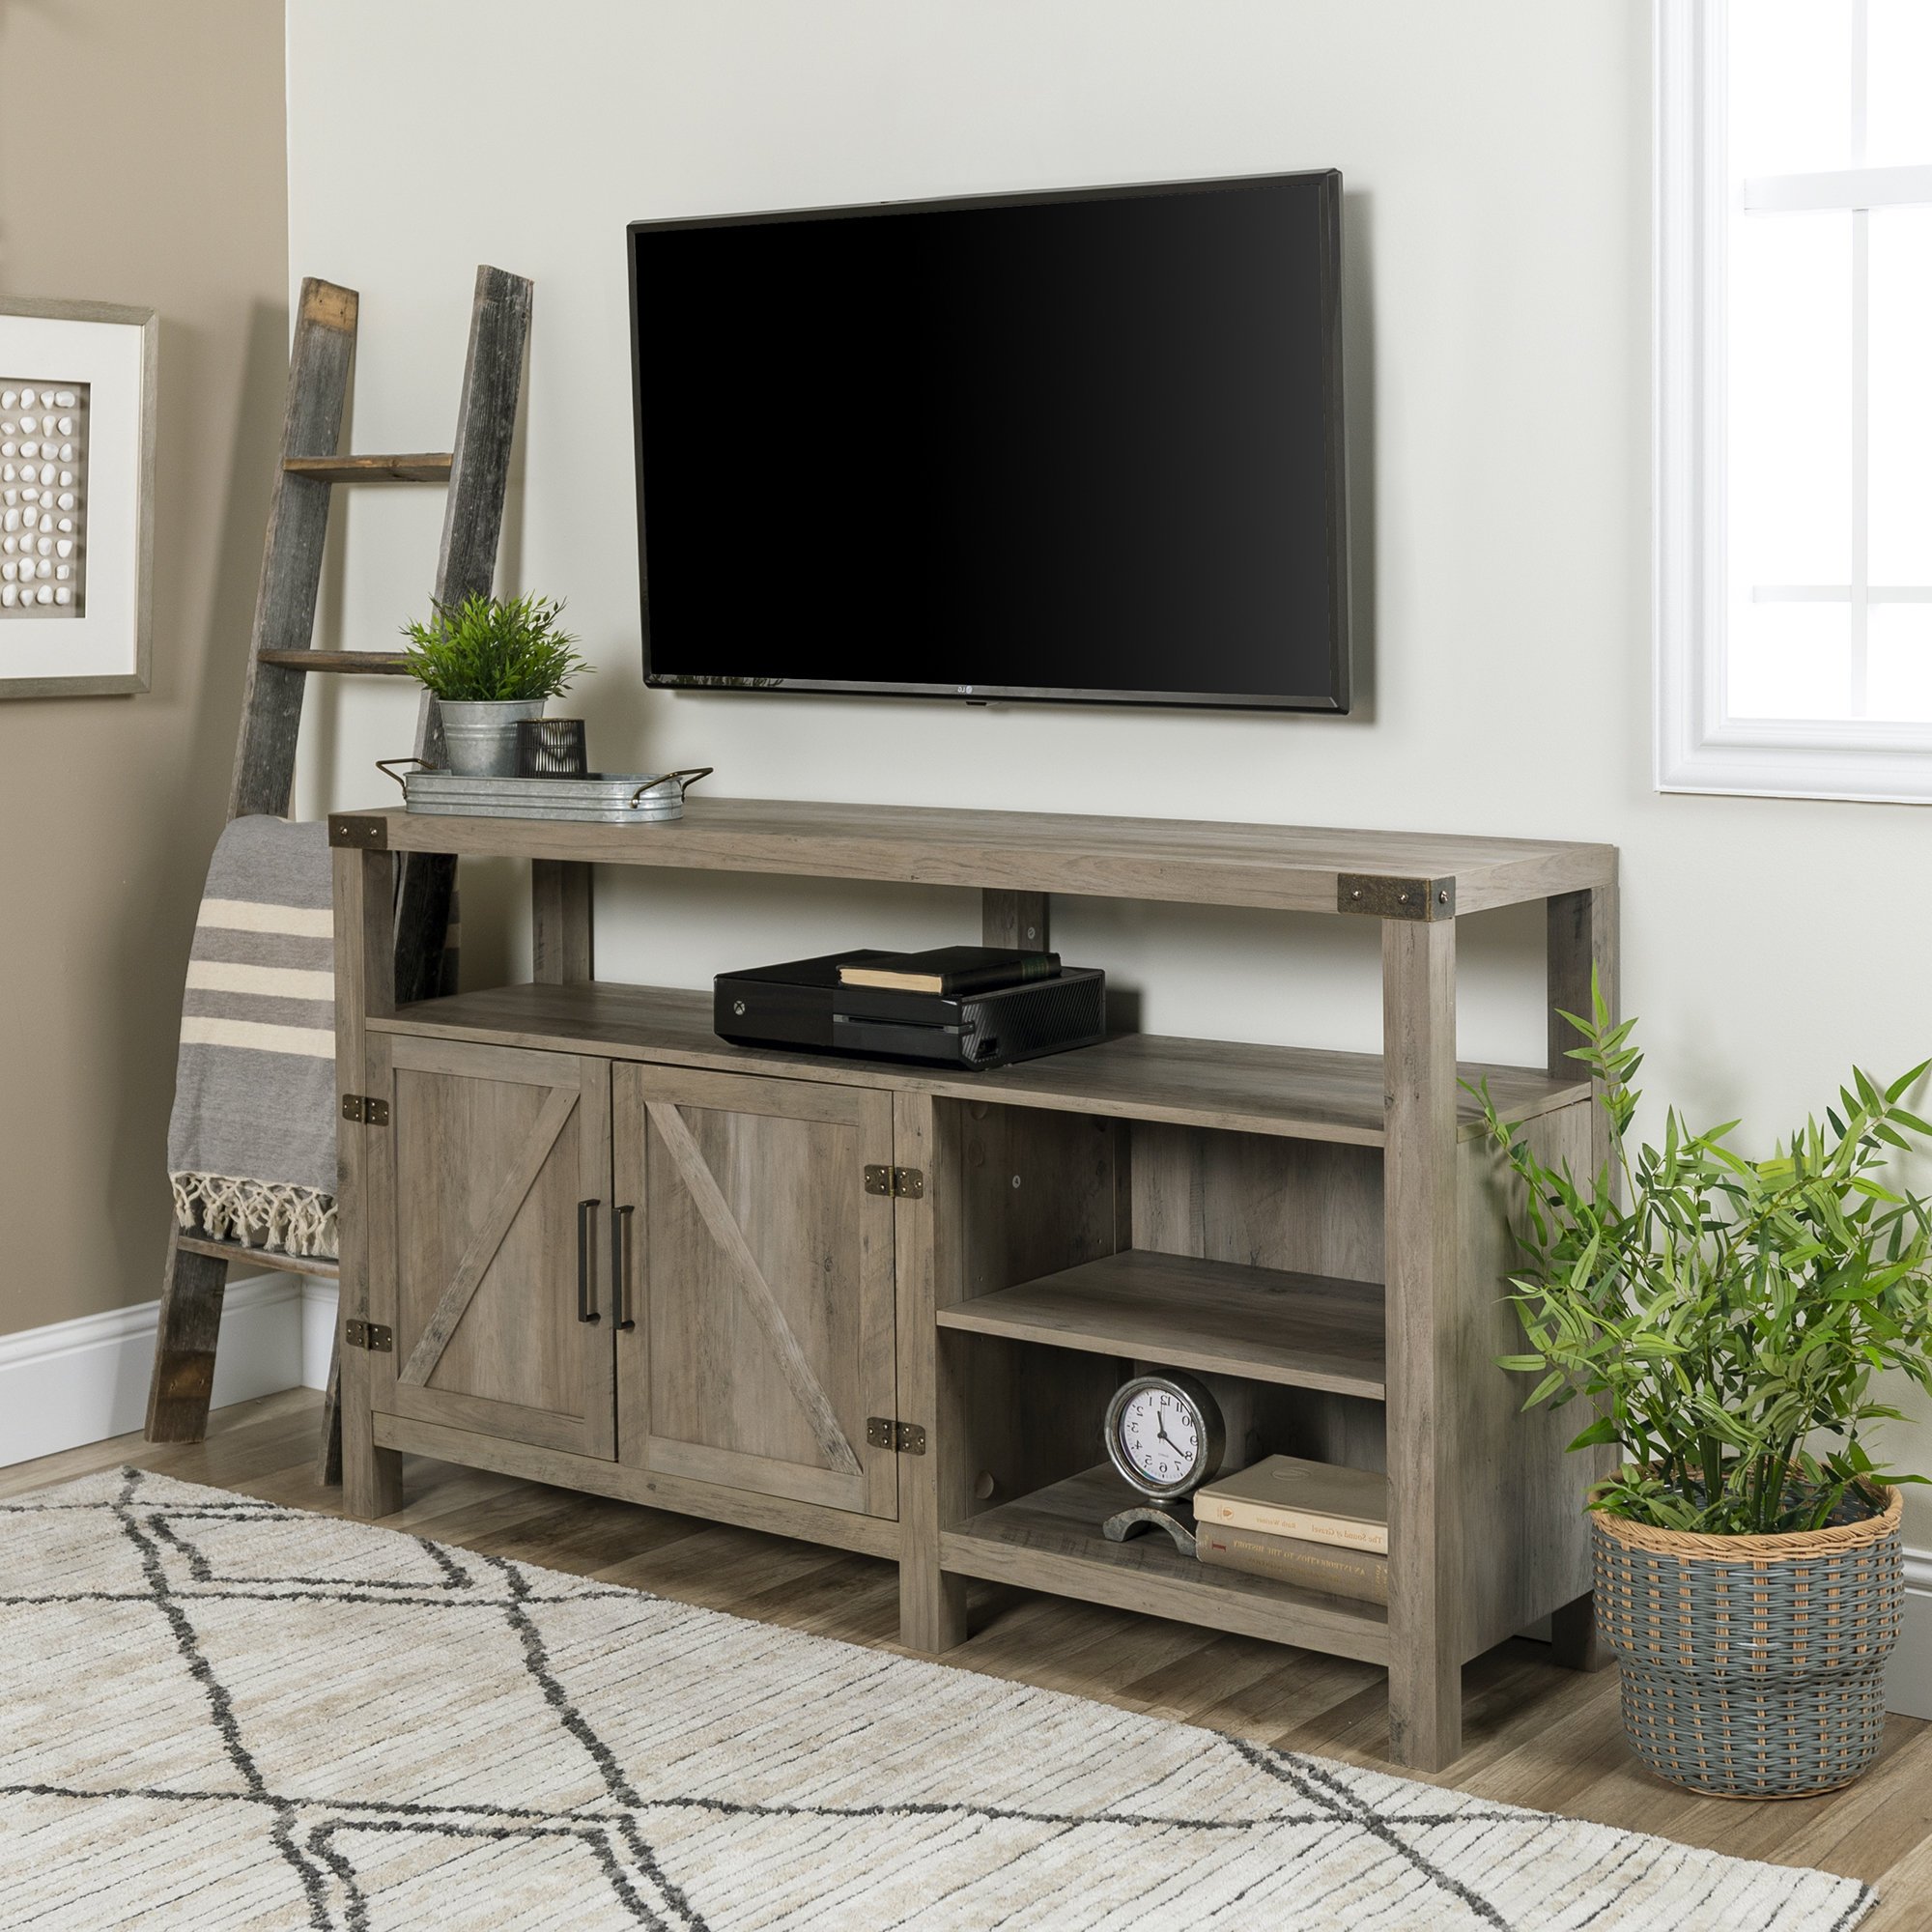 Century Blue 60 Inch Tv Stands Regarding Well Known Tall Narrow Tv Stand (View 3 of 20)